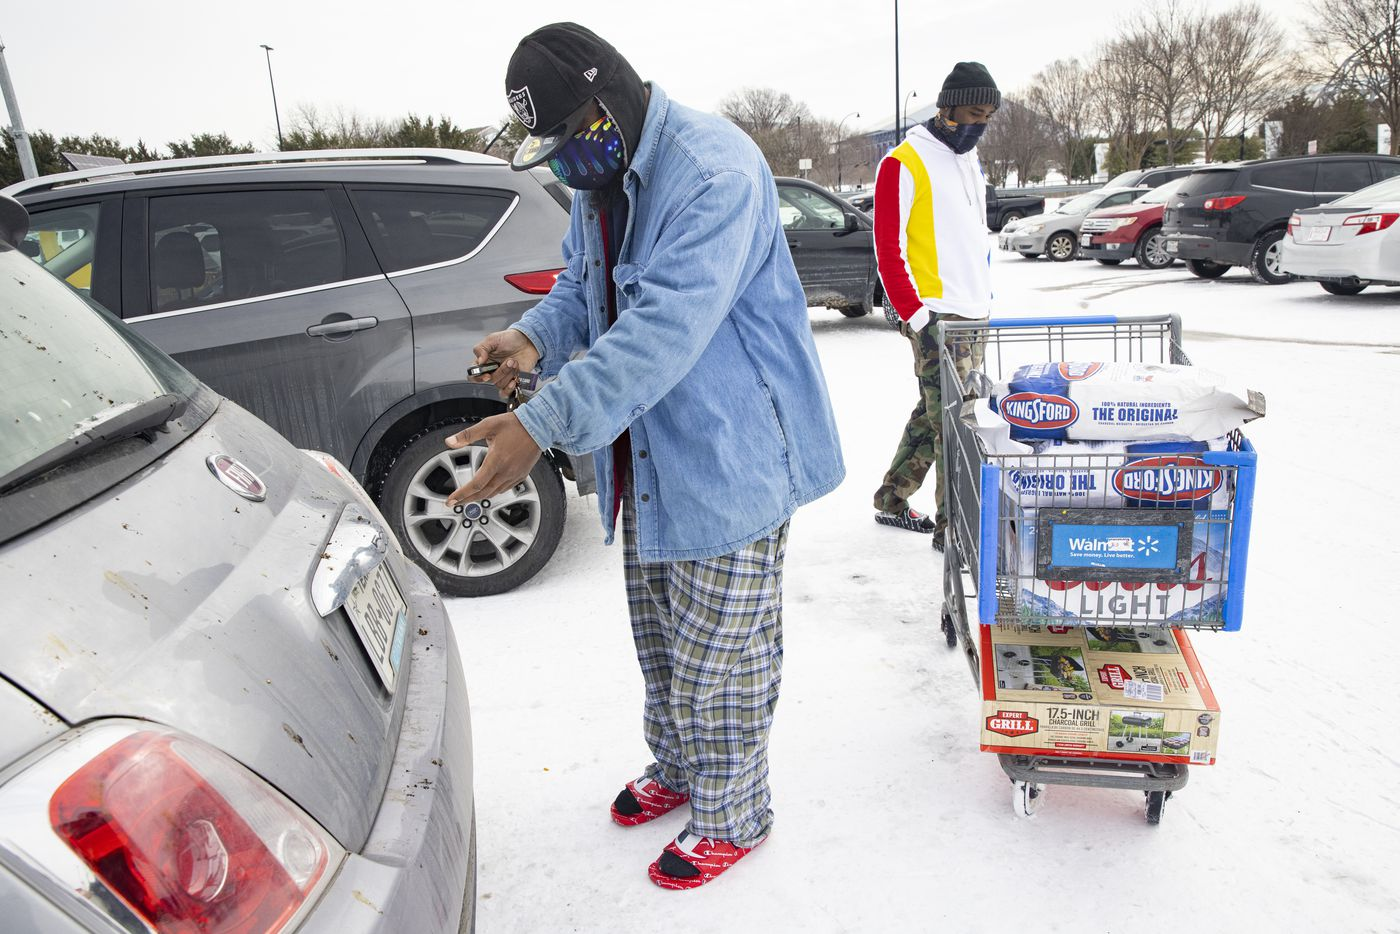 Reuben Brown (left) and Dekaetron McCalley wheel charcoal and a grill they bought at Walmart to their car at Walmart in Arlington on Tuesday, Feb. 16, 2021. They lost power yesterday and plan to use the charcoal and grill to cook food. (Juan Figueroa/ The Dallas Morning News)